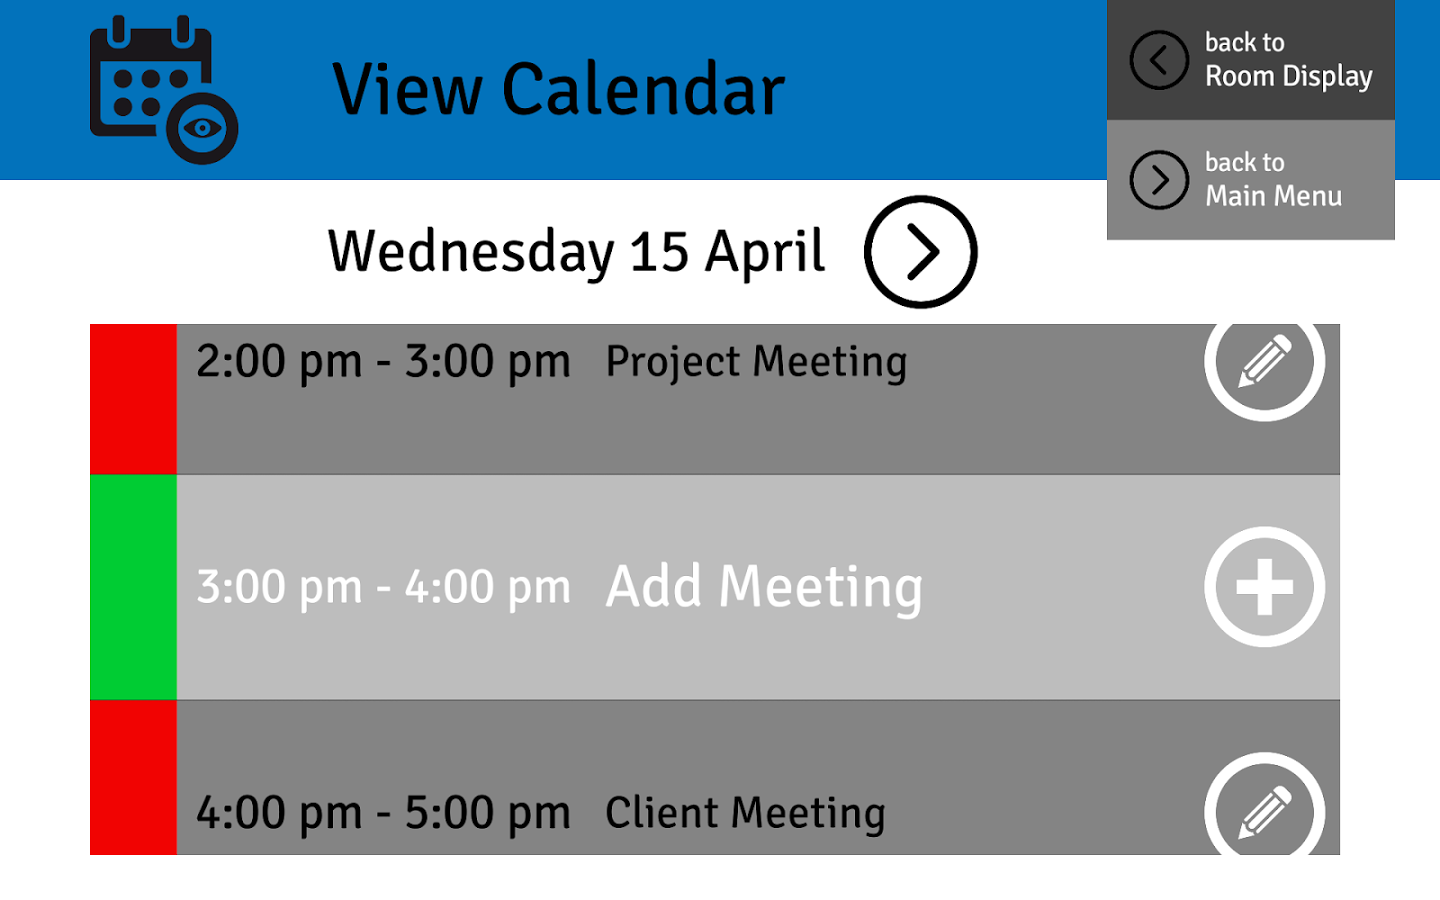 Meeting Room Display 4 Android Apps on Google Play